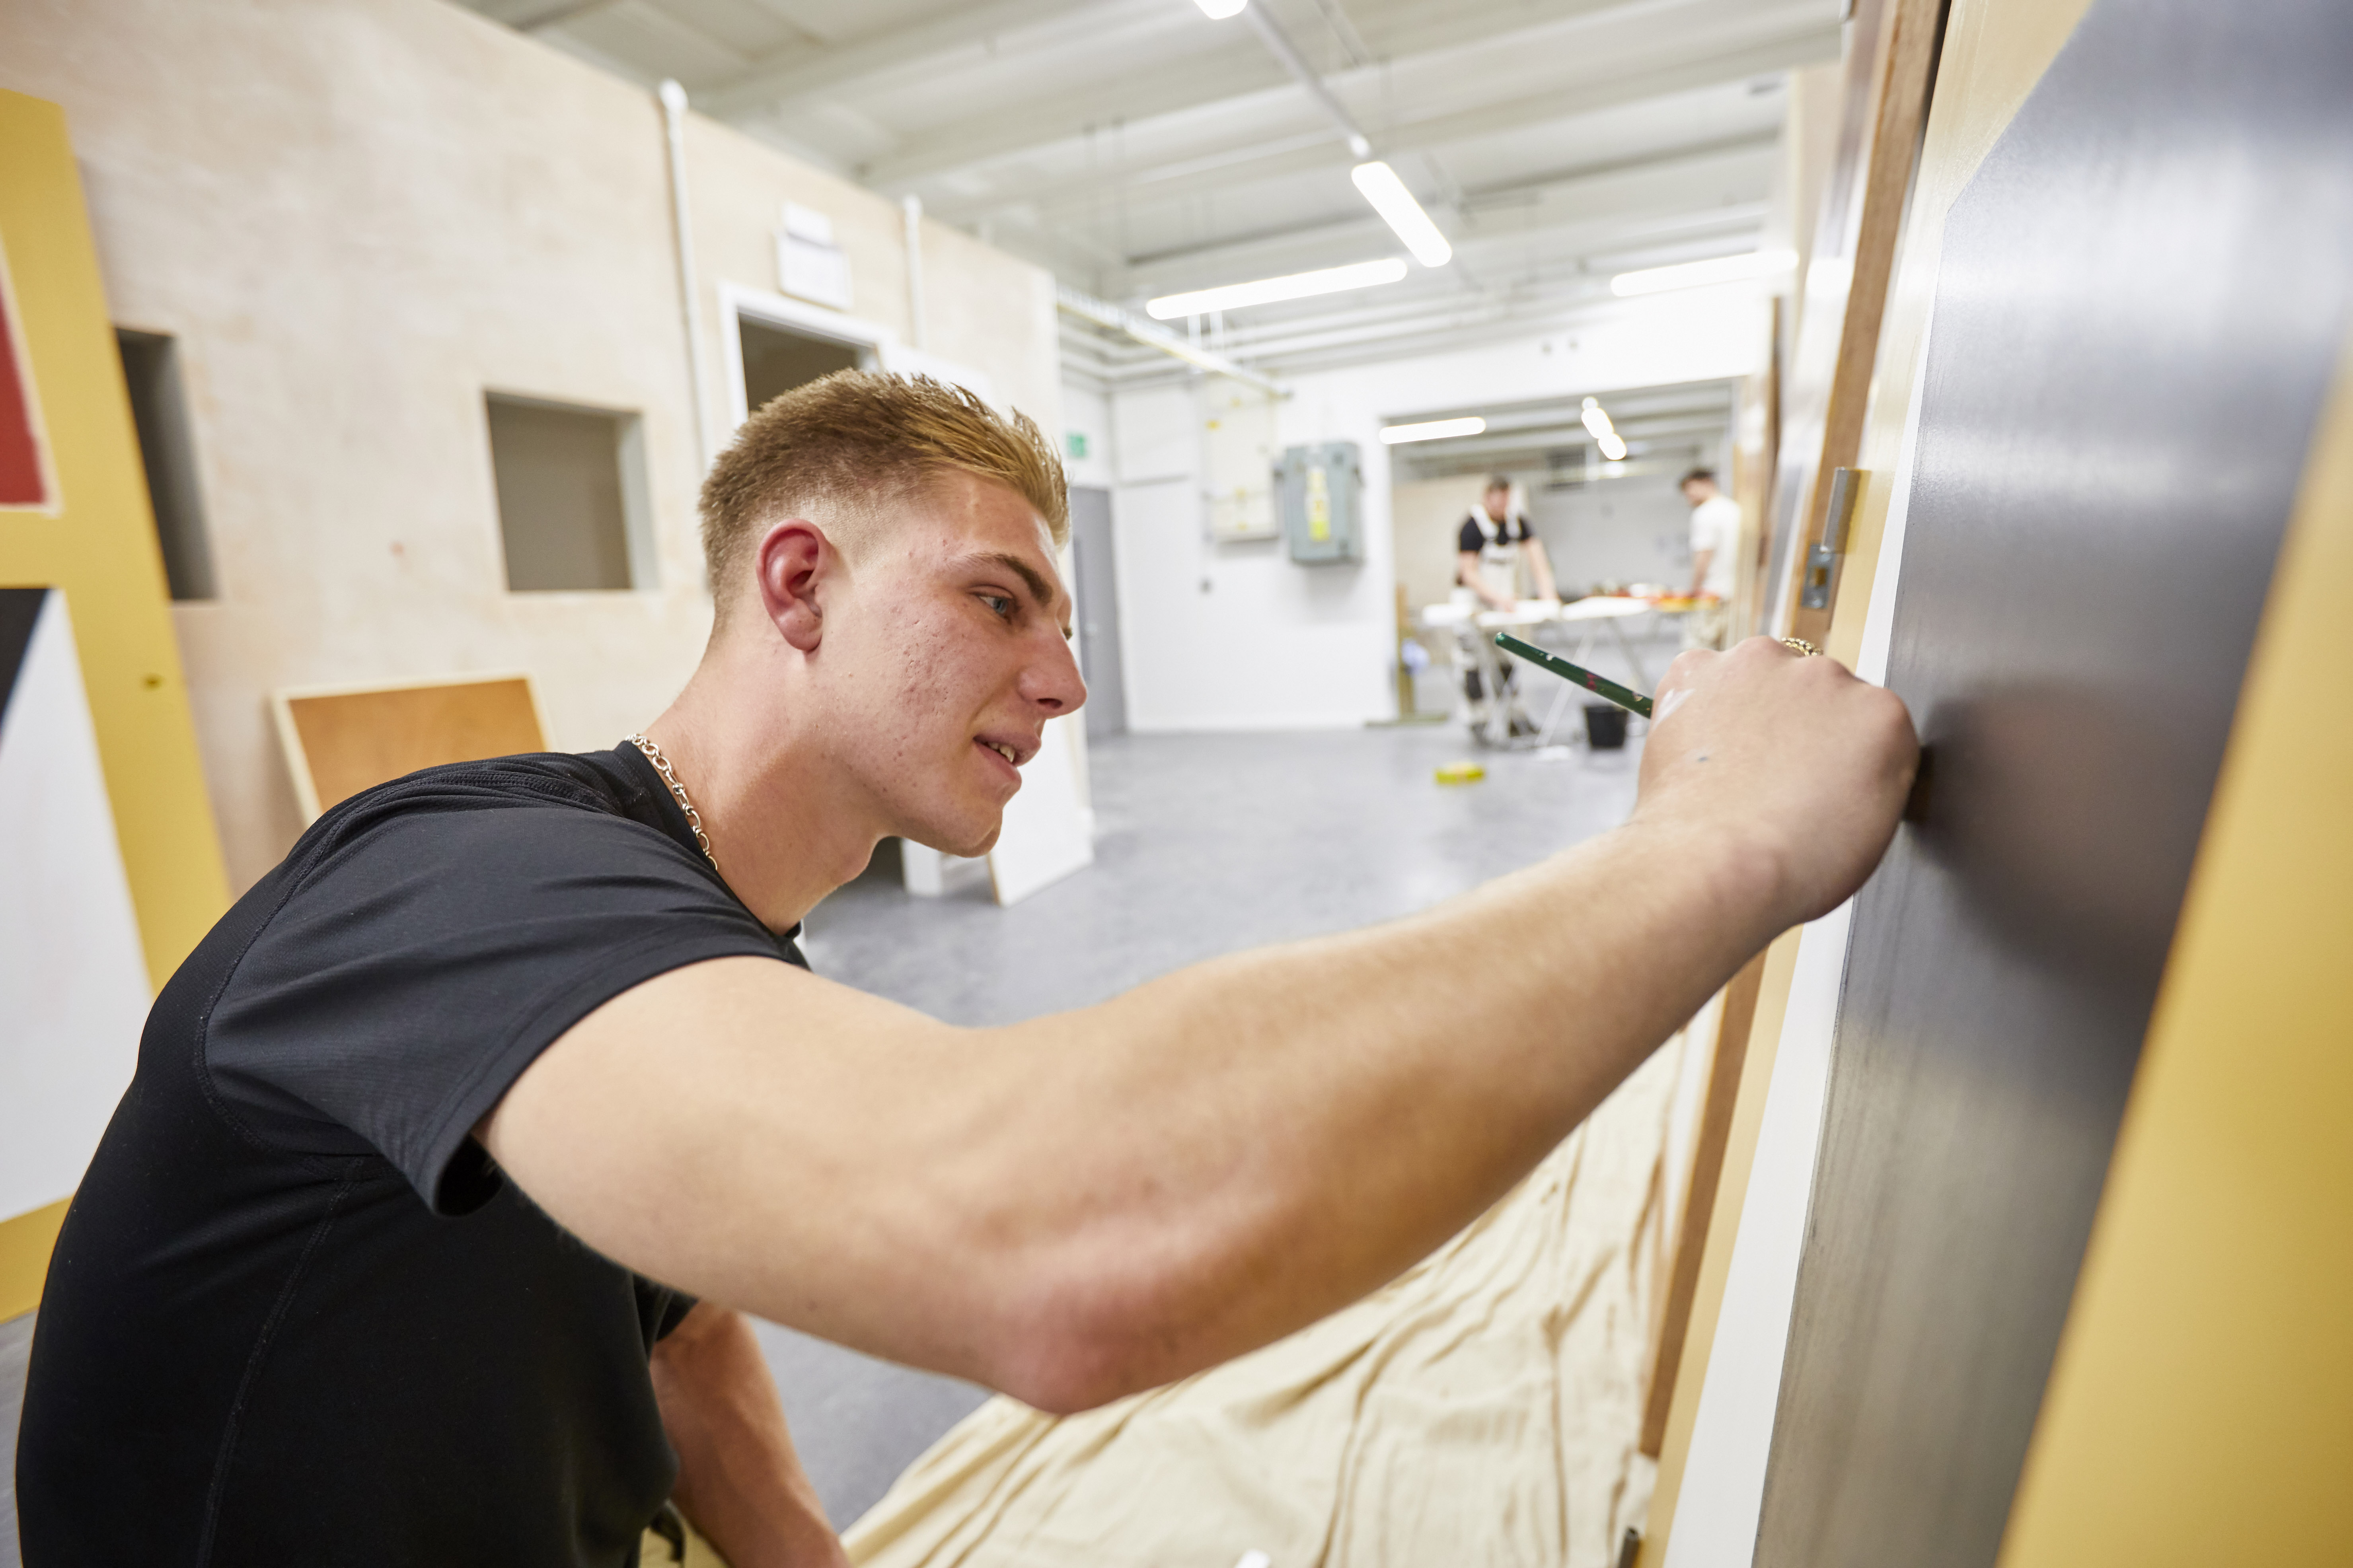 Students begin working in our new Painting & Decorating facilities